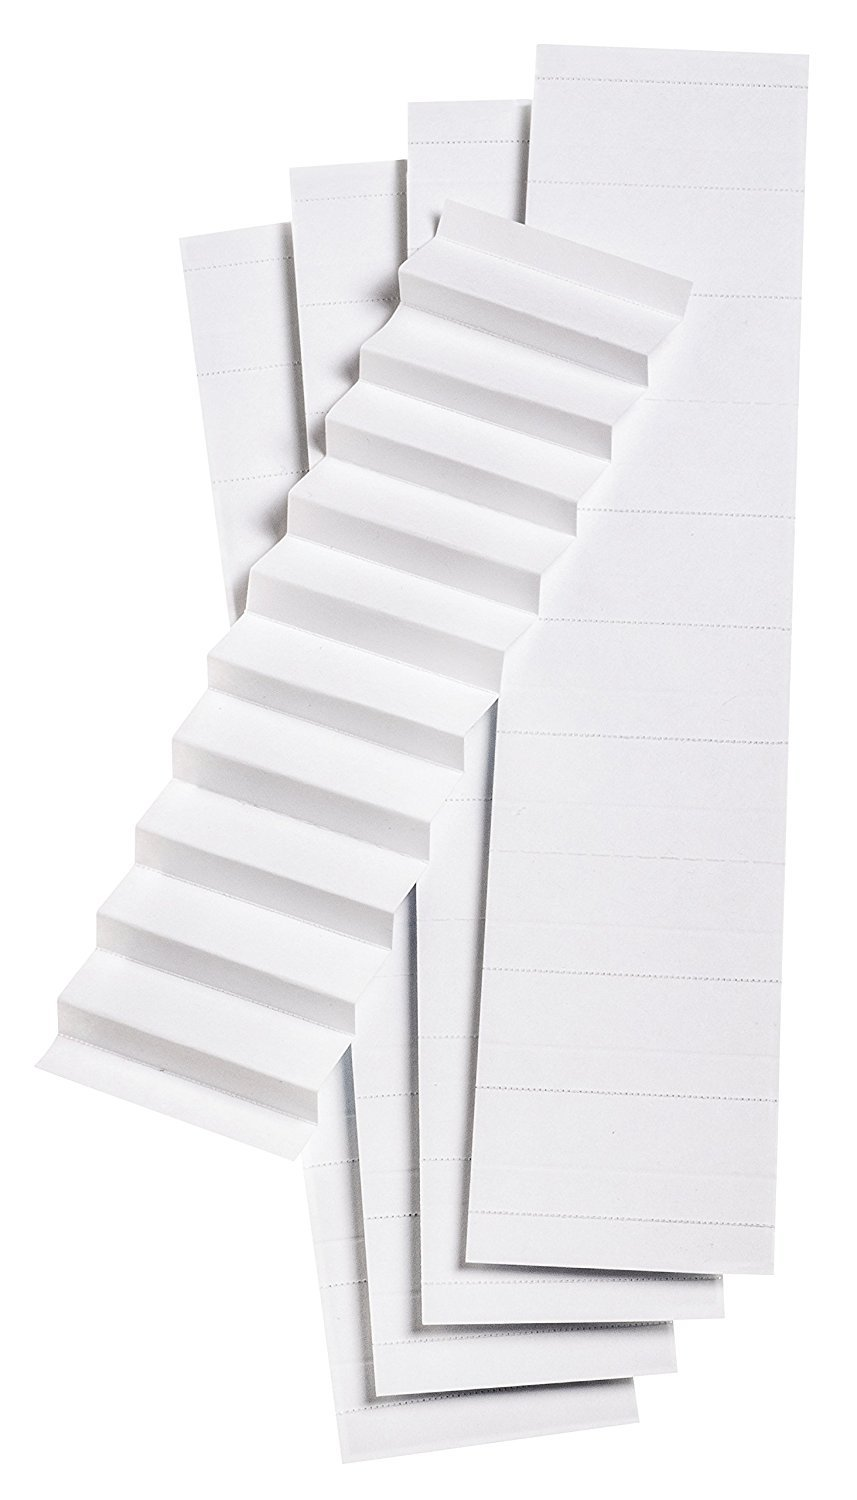 Pendaflex Blank Inserts for 1/5 Cut Hanging File Folders, 2 in, White, 100/Pack (242) (3)